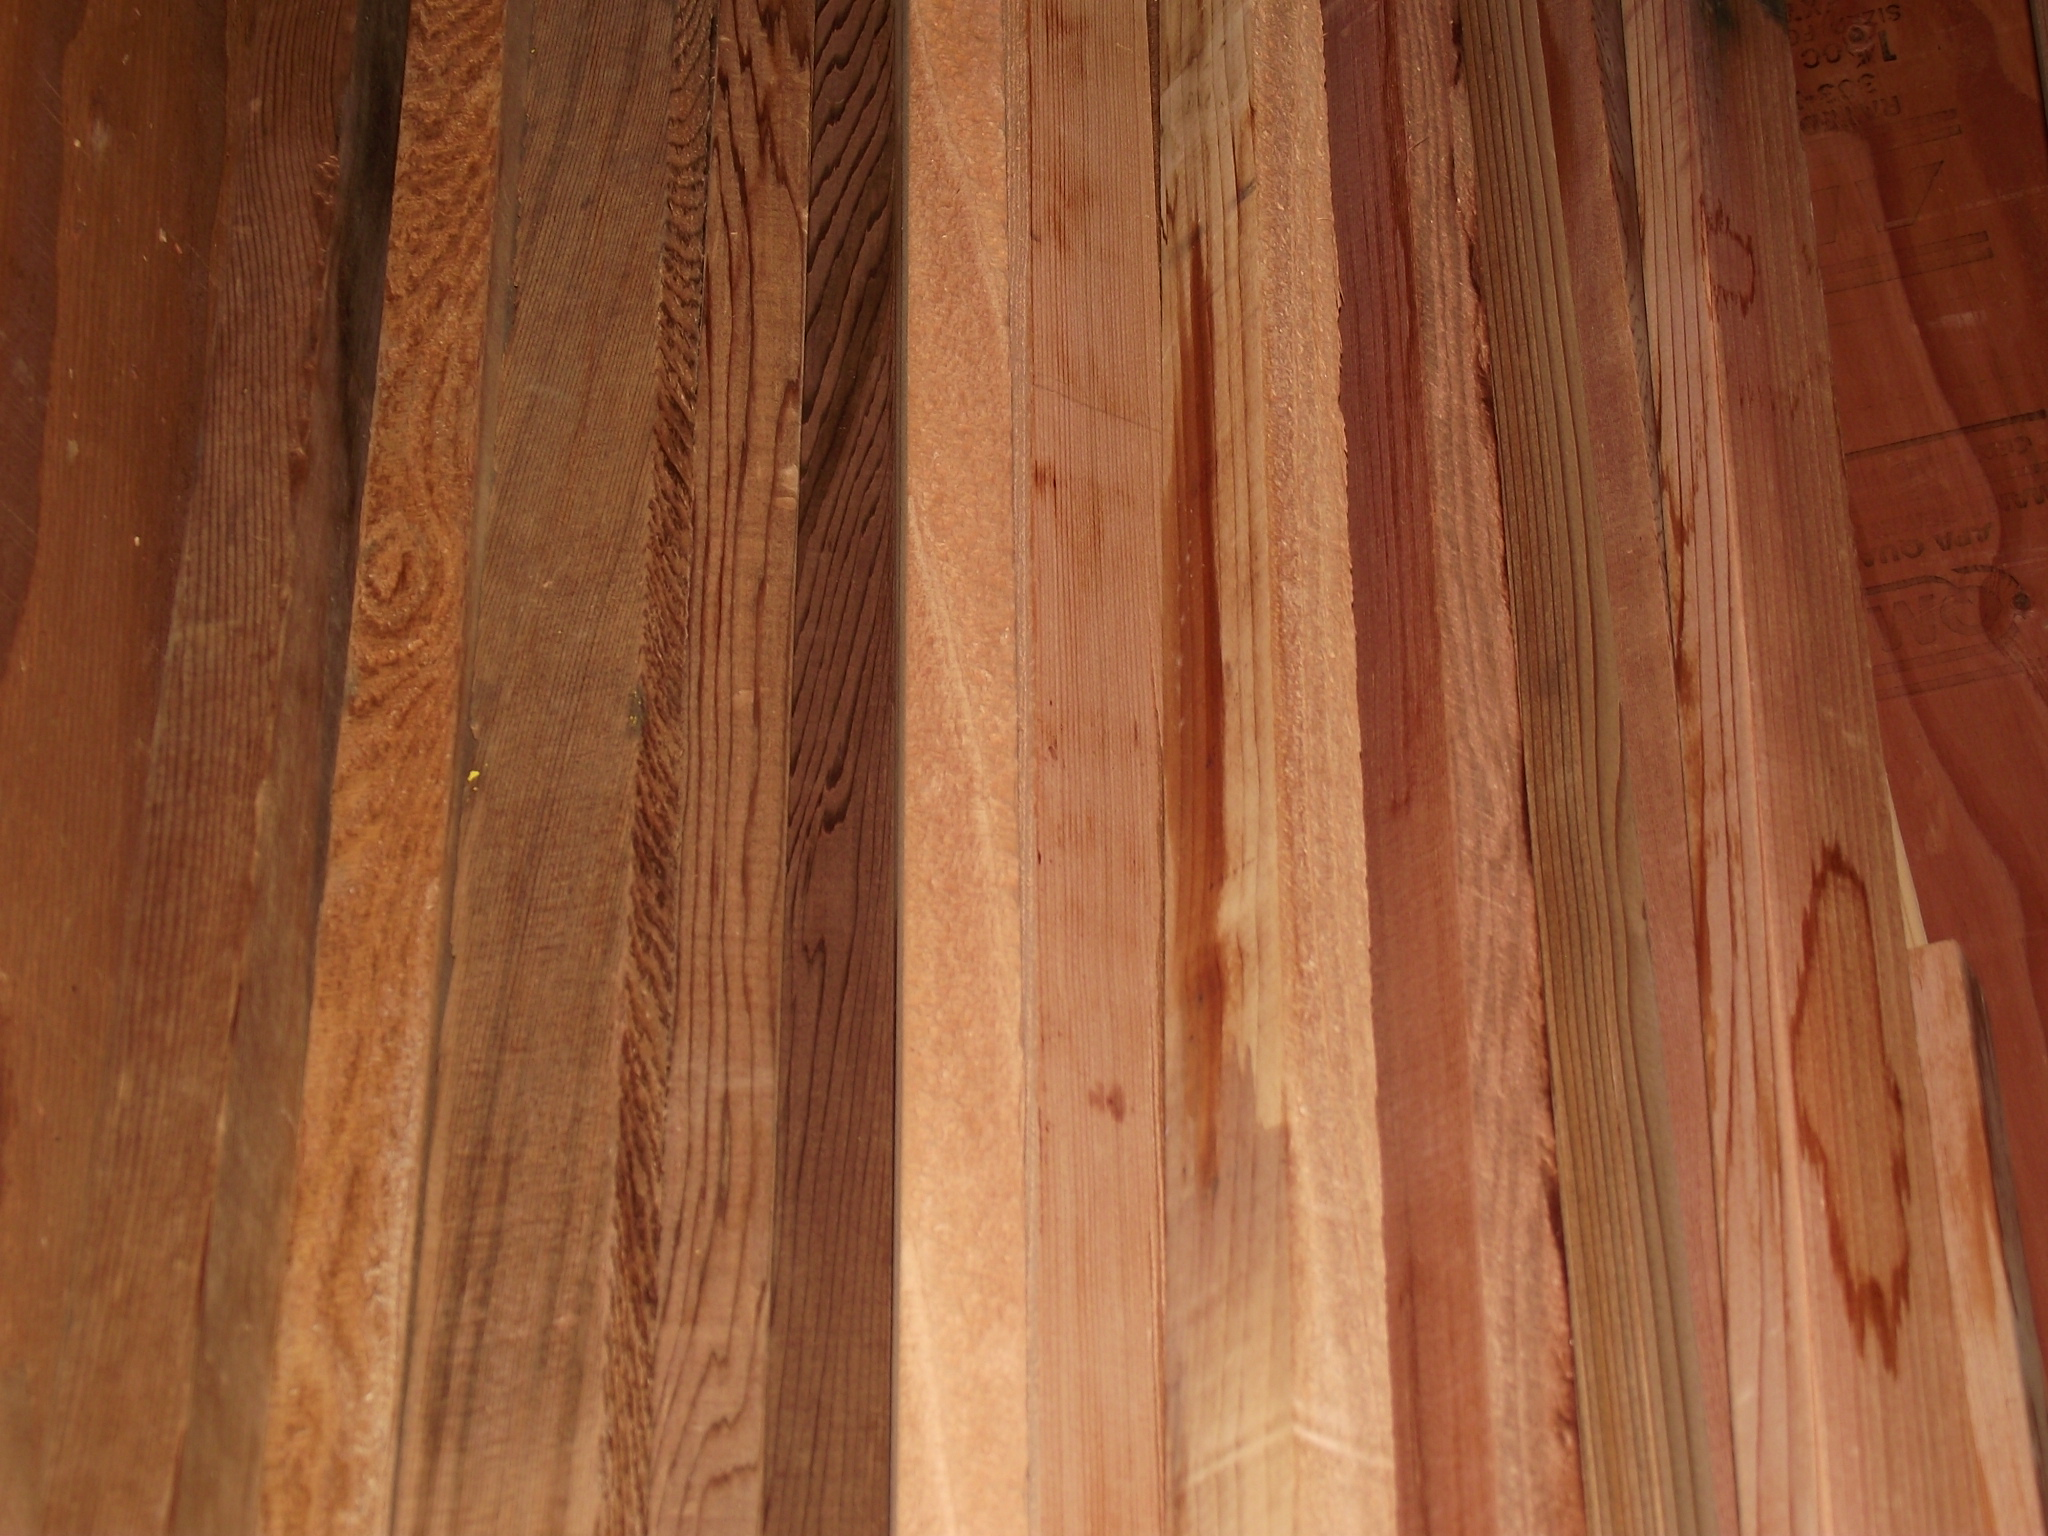 1 X 2 Clear Utility Cedar 171 Mill Outlet Lumber